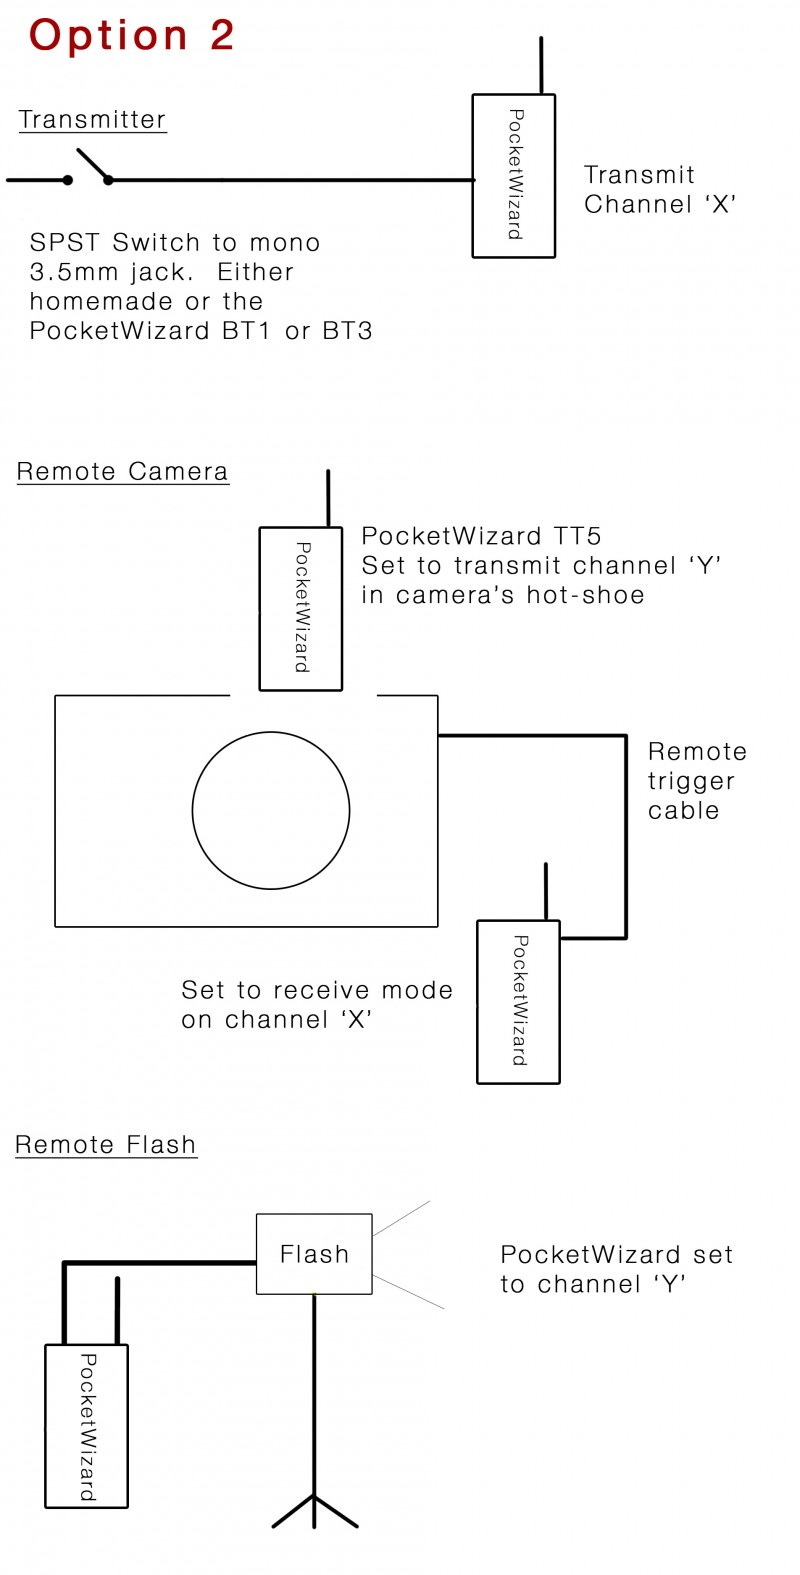 Remote camera setup with flas pocketwizards